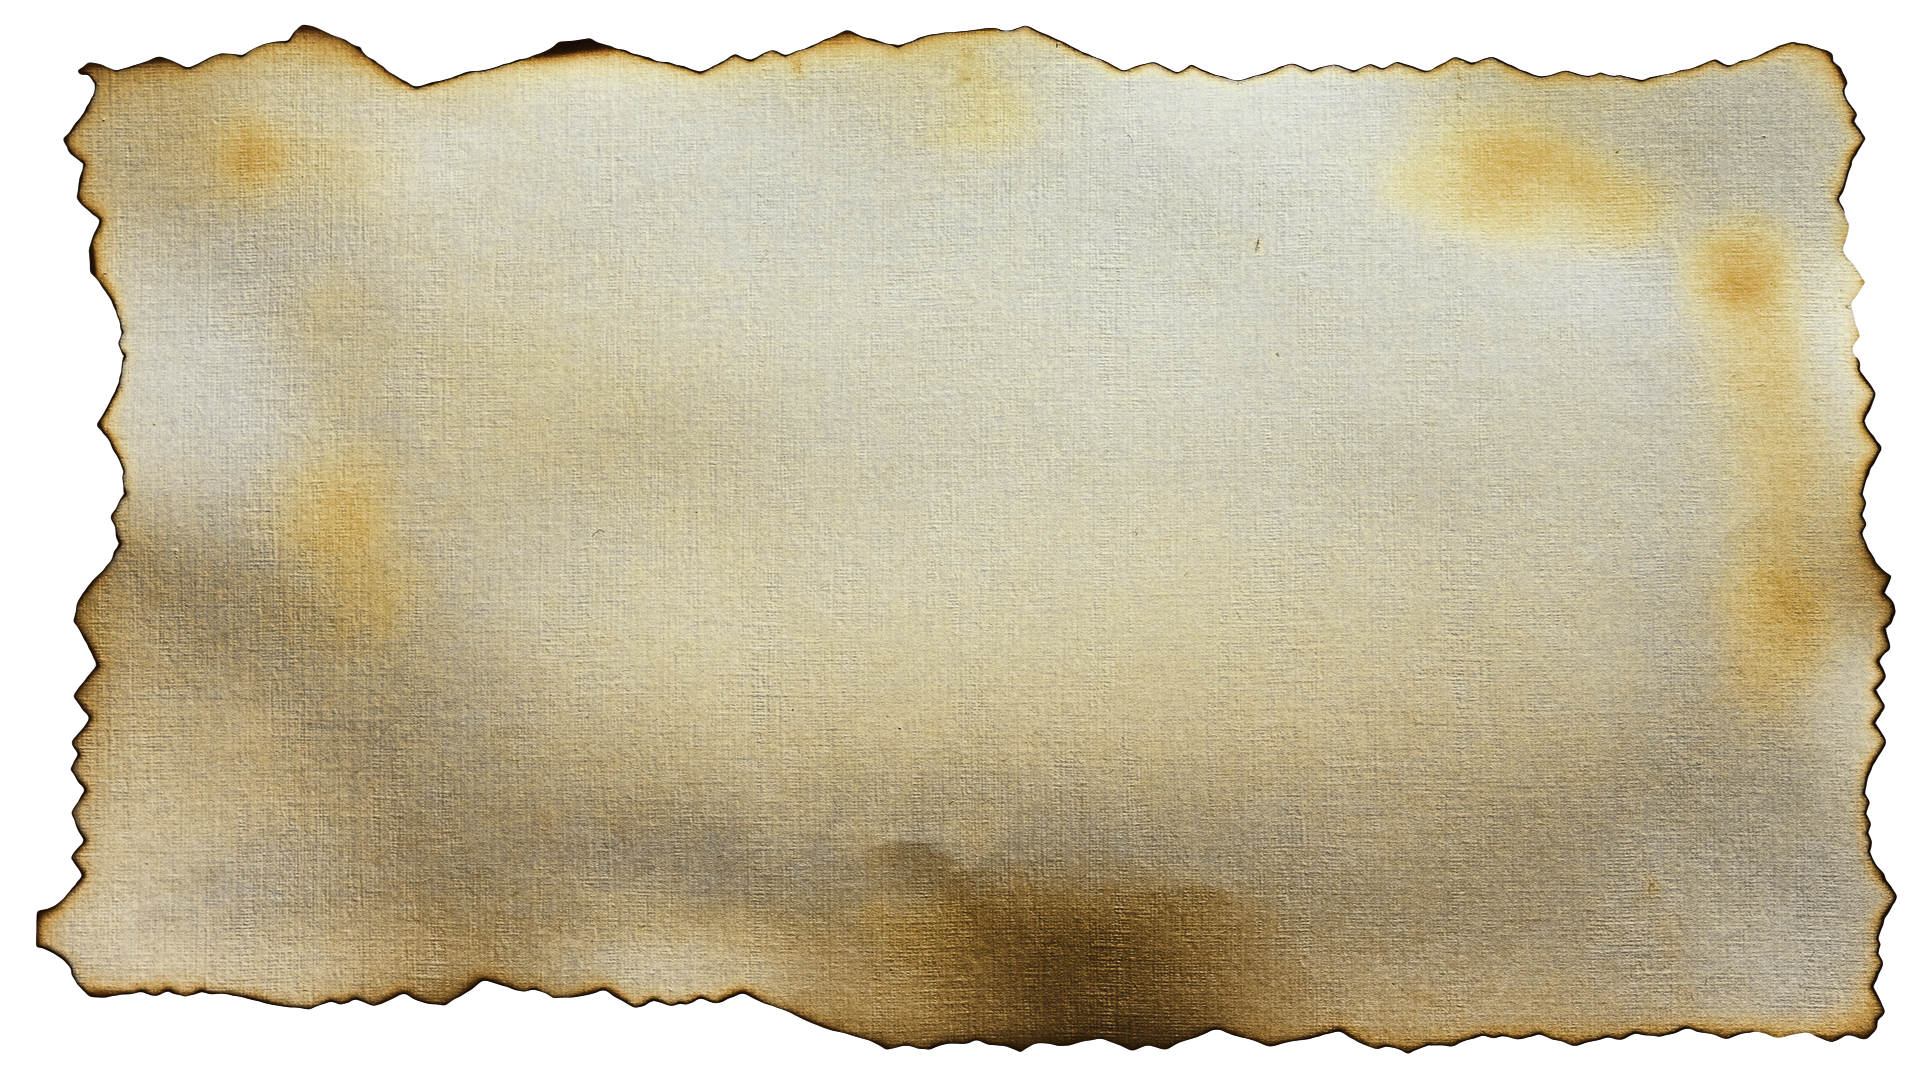 Newspaper background png. Burnt paper transparent images